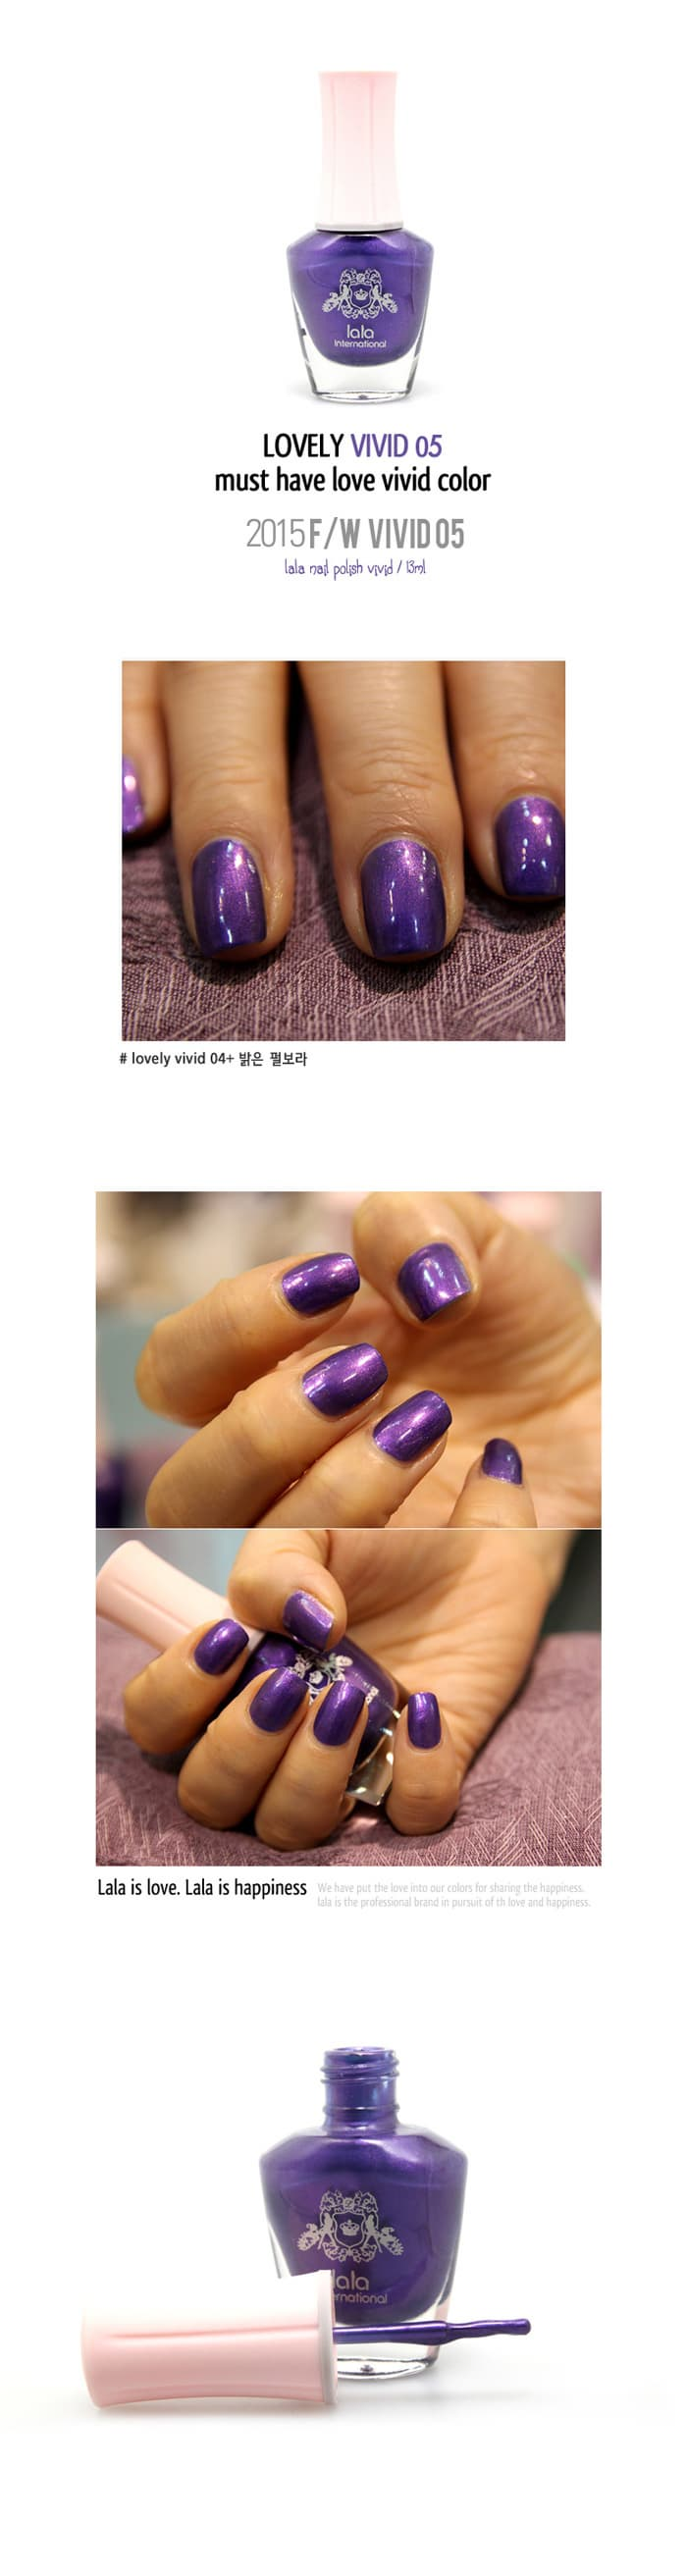 Lalalees Vivid color polish